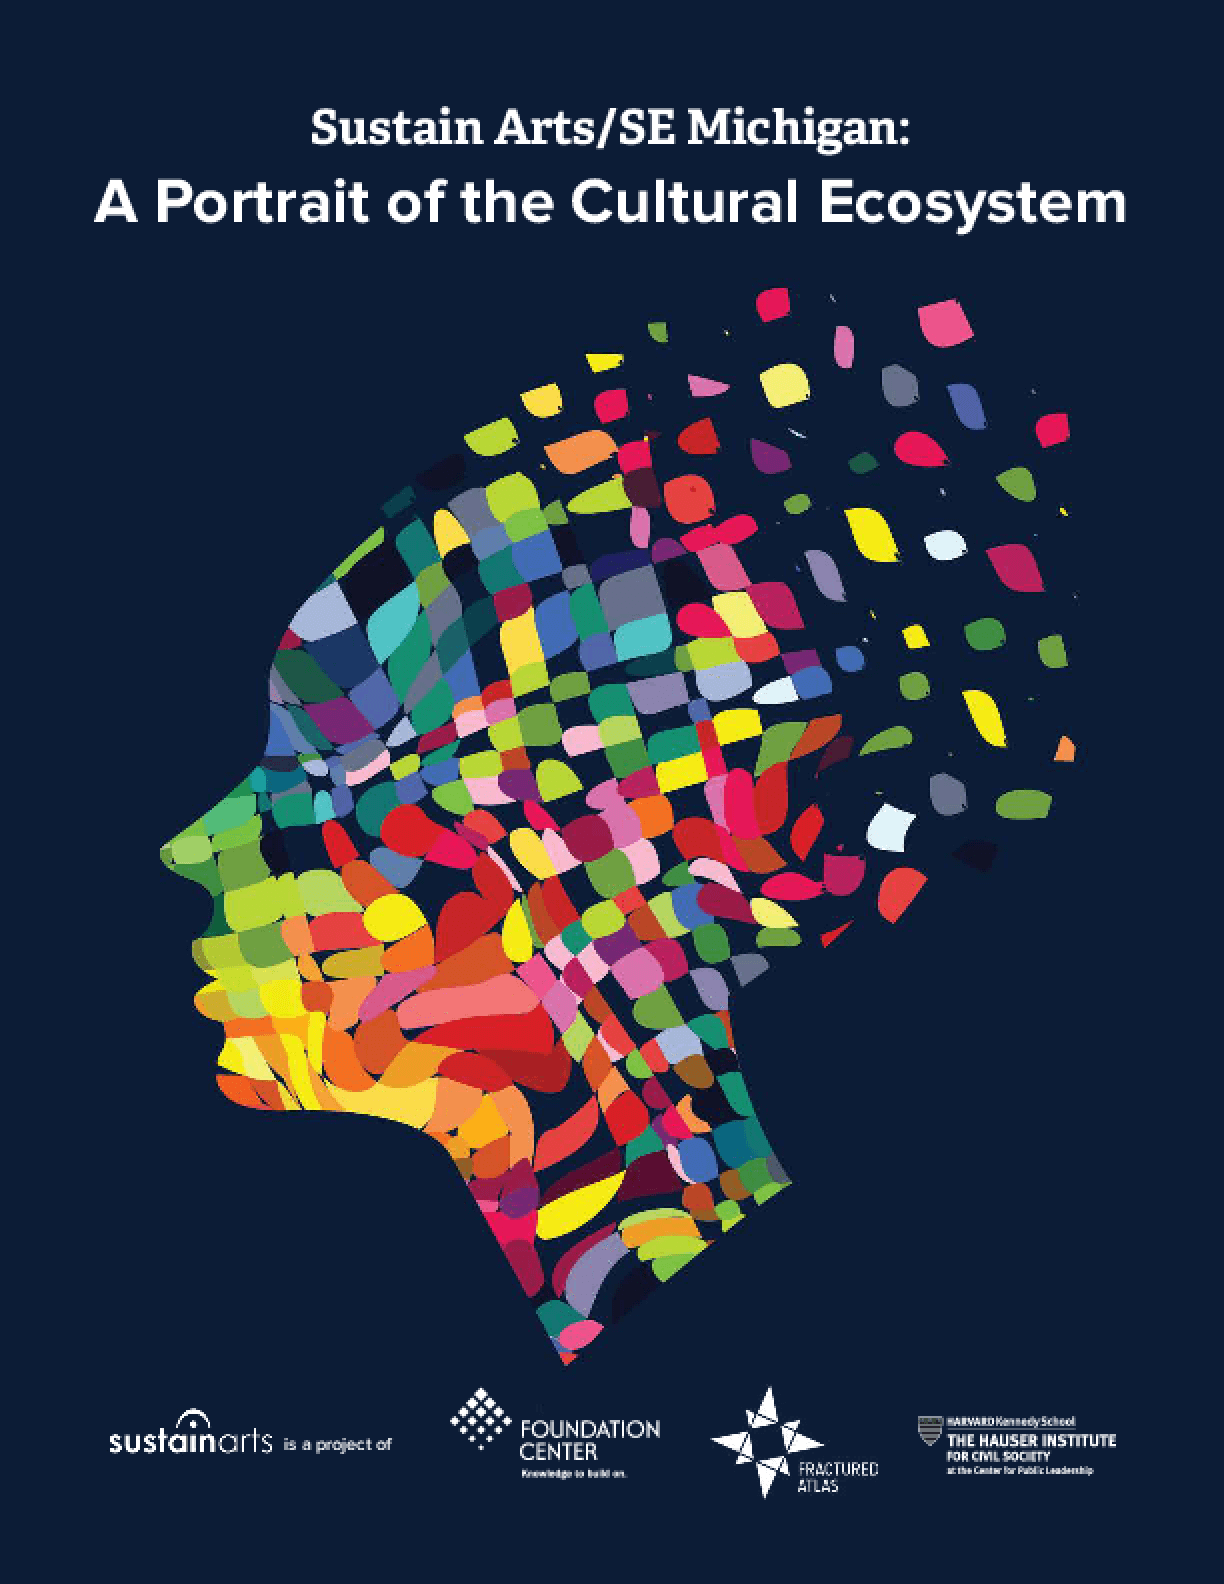 Sustain Arts/SE Michigan: A Portrait of the Cultural Ecosystem